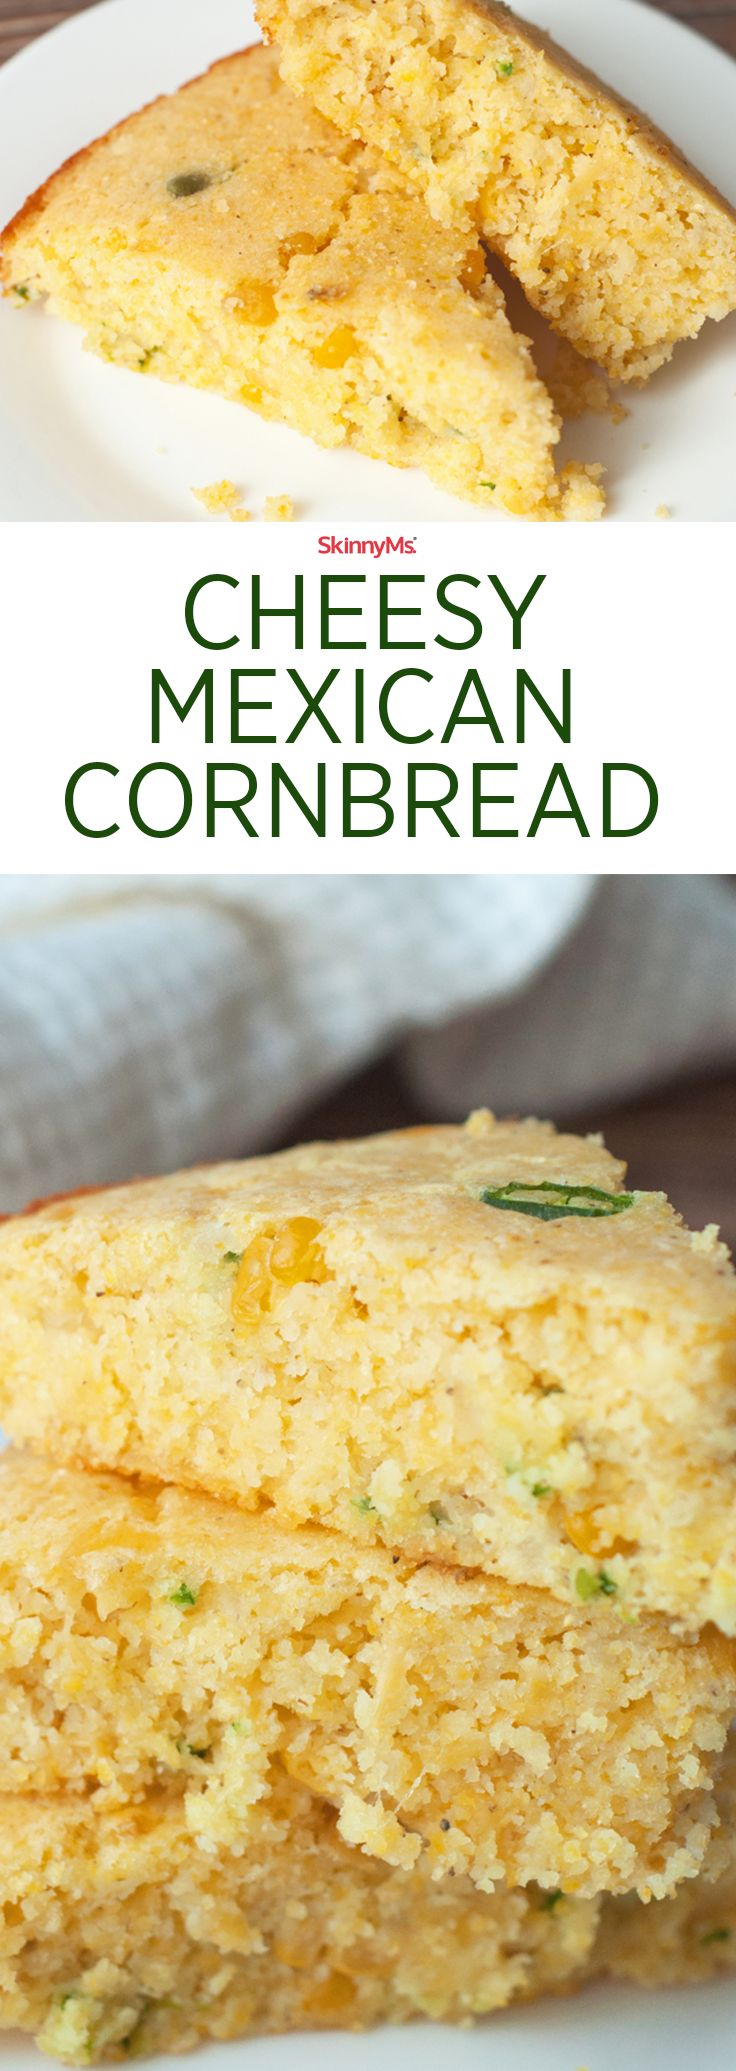 What do you pair cornbread with?